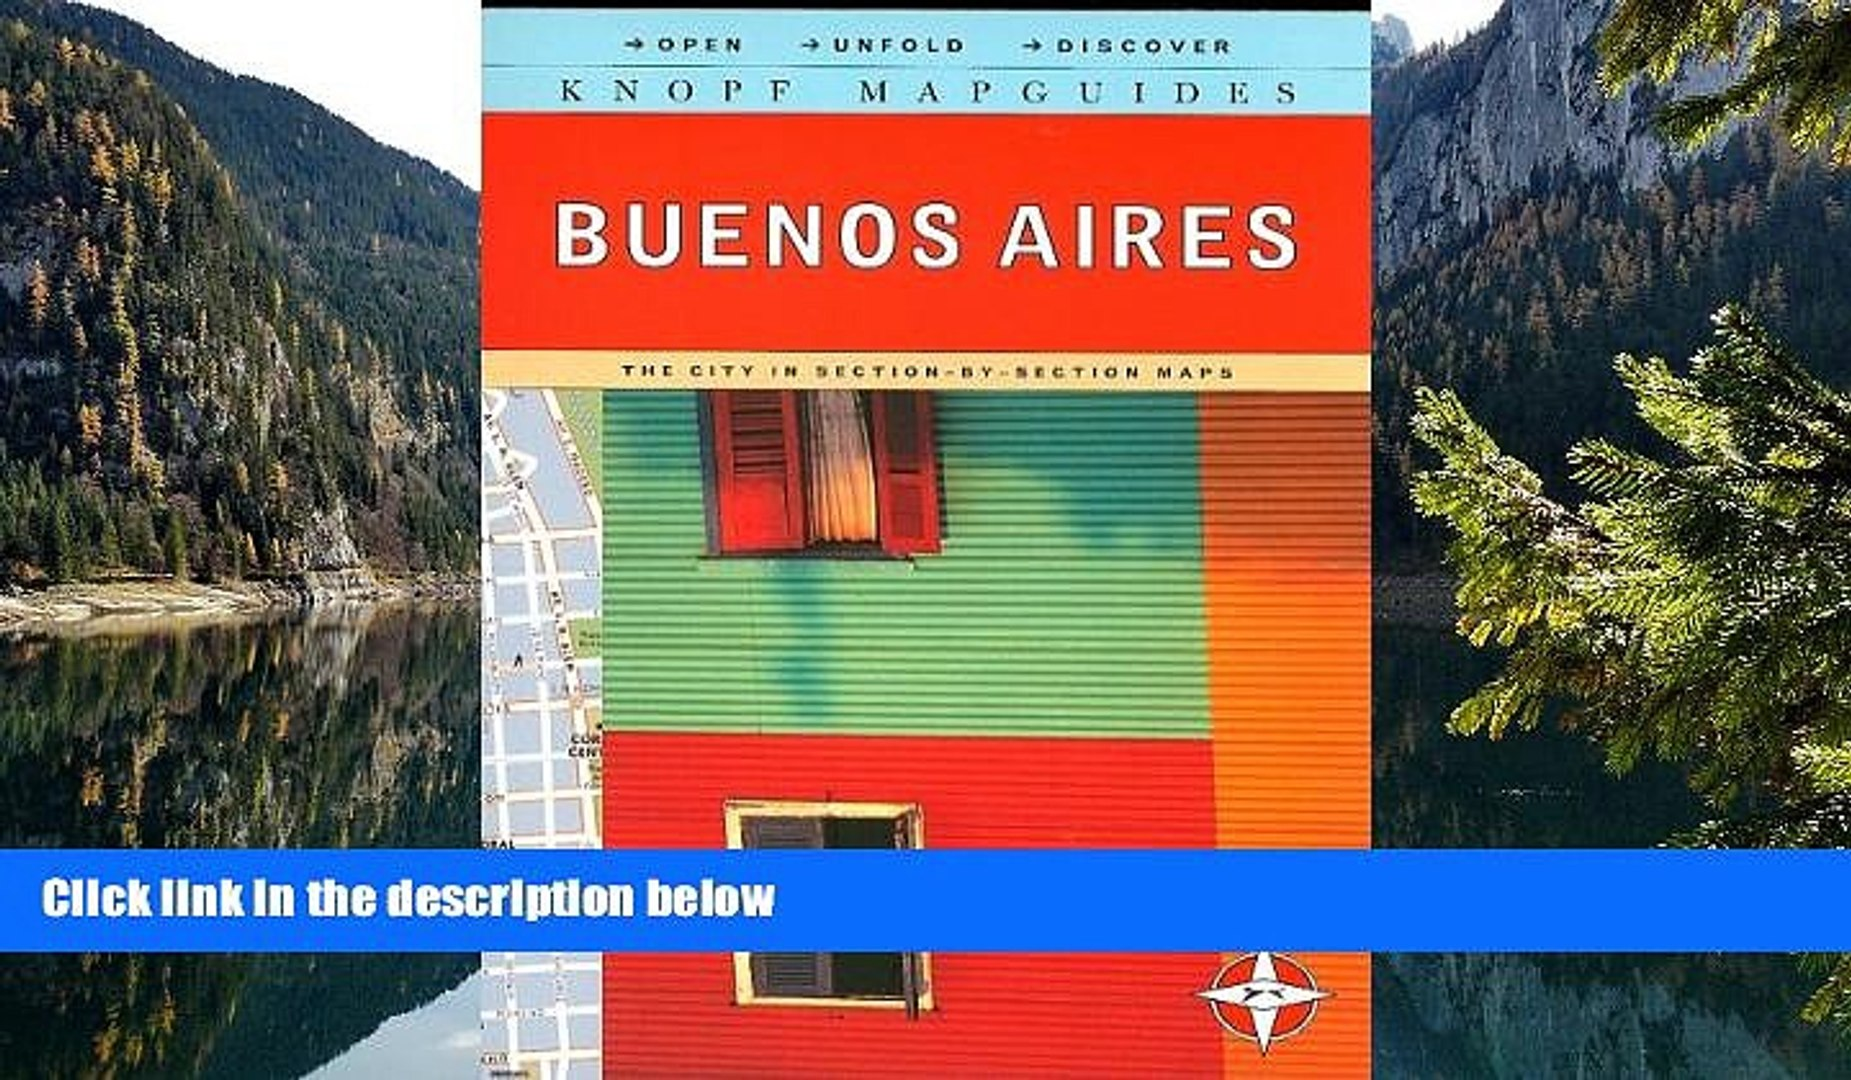 Buenos Aires Knopf MapGuides